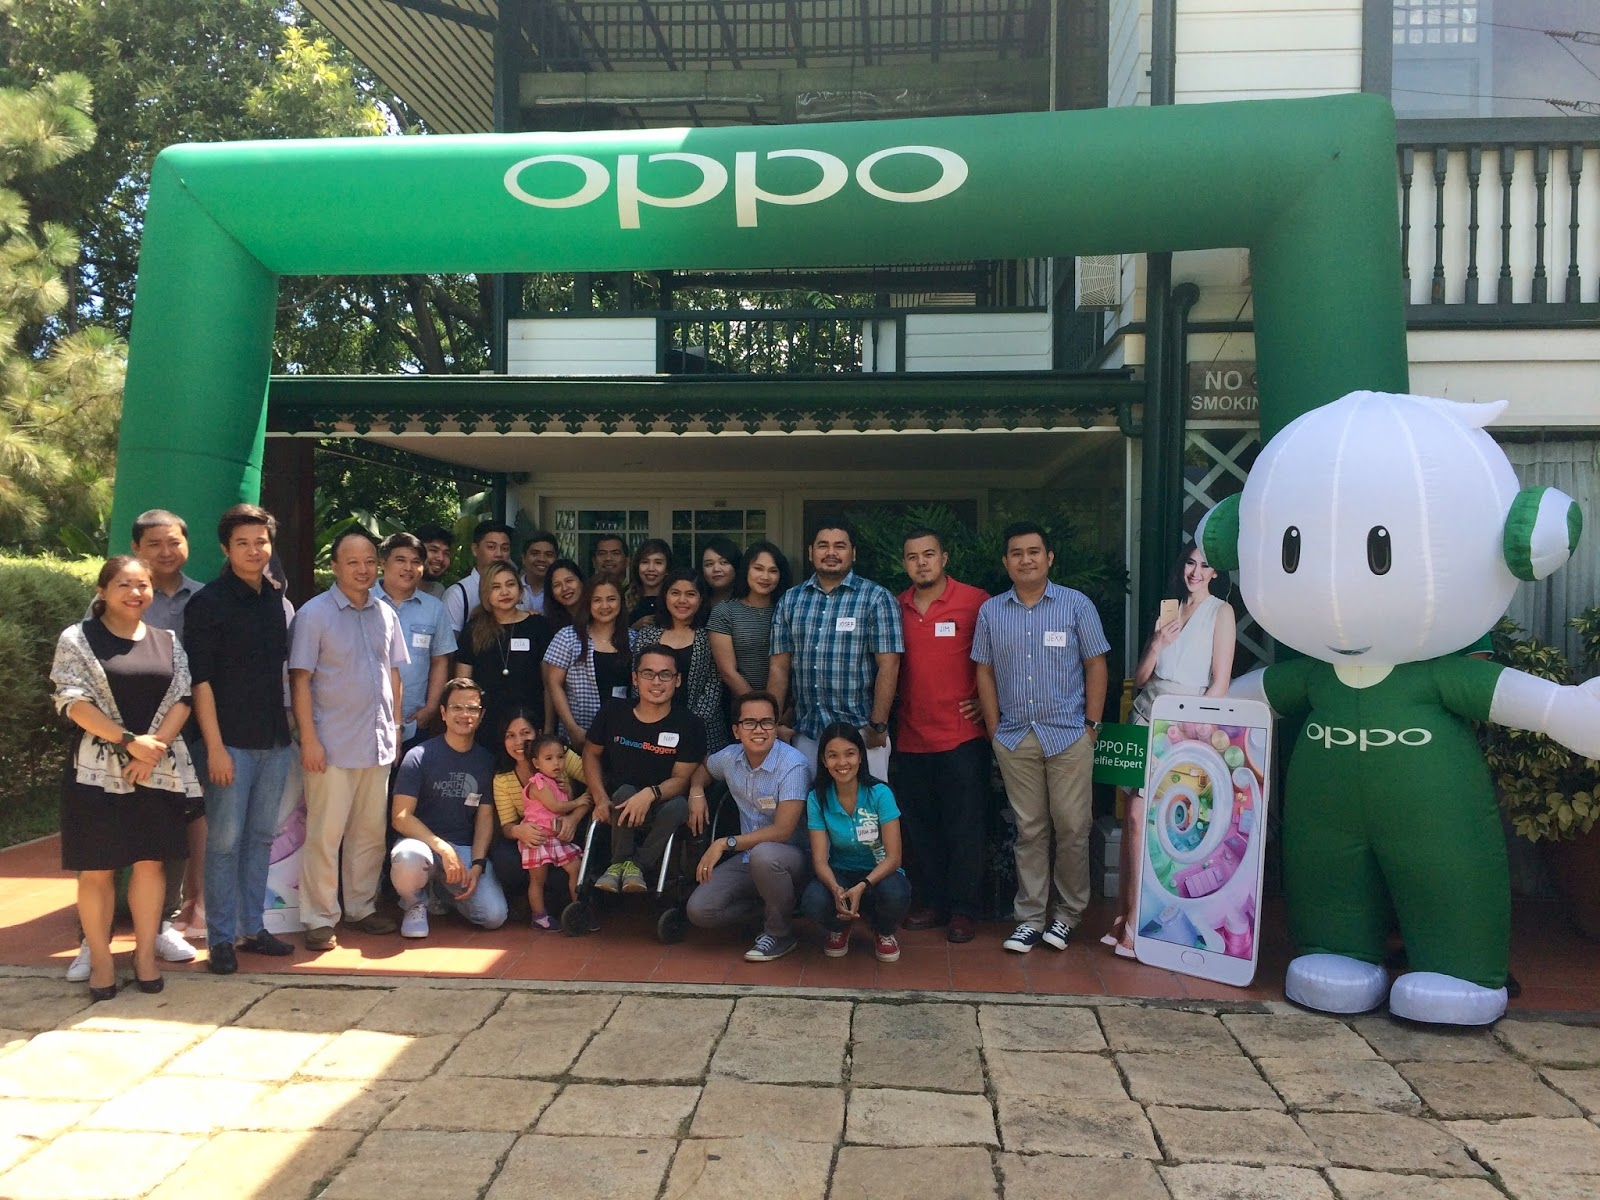 OPPO F1s - The Selfie Expert launched in Davao